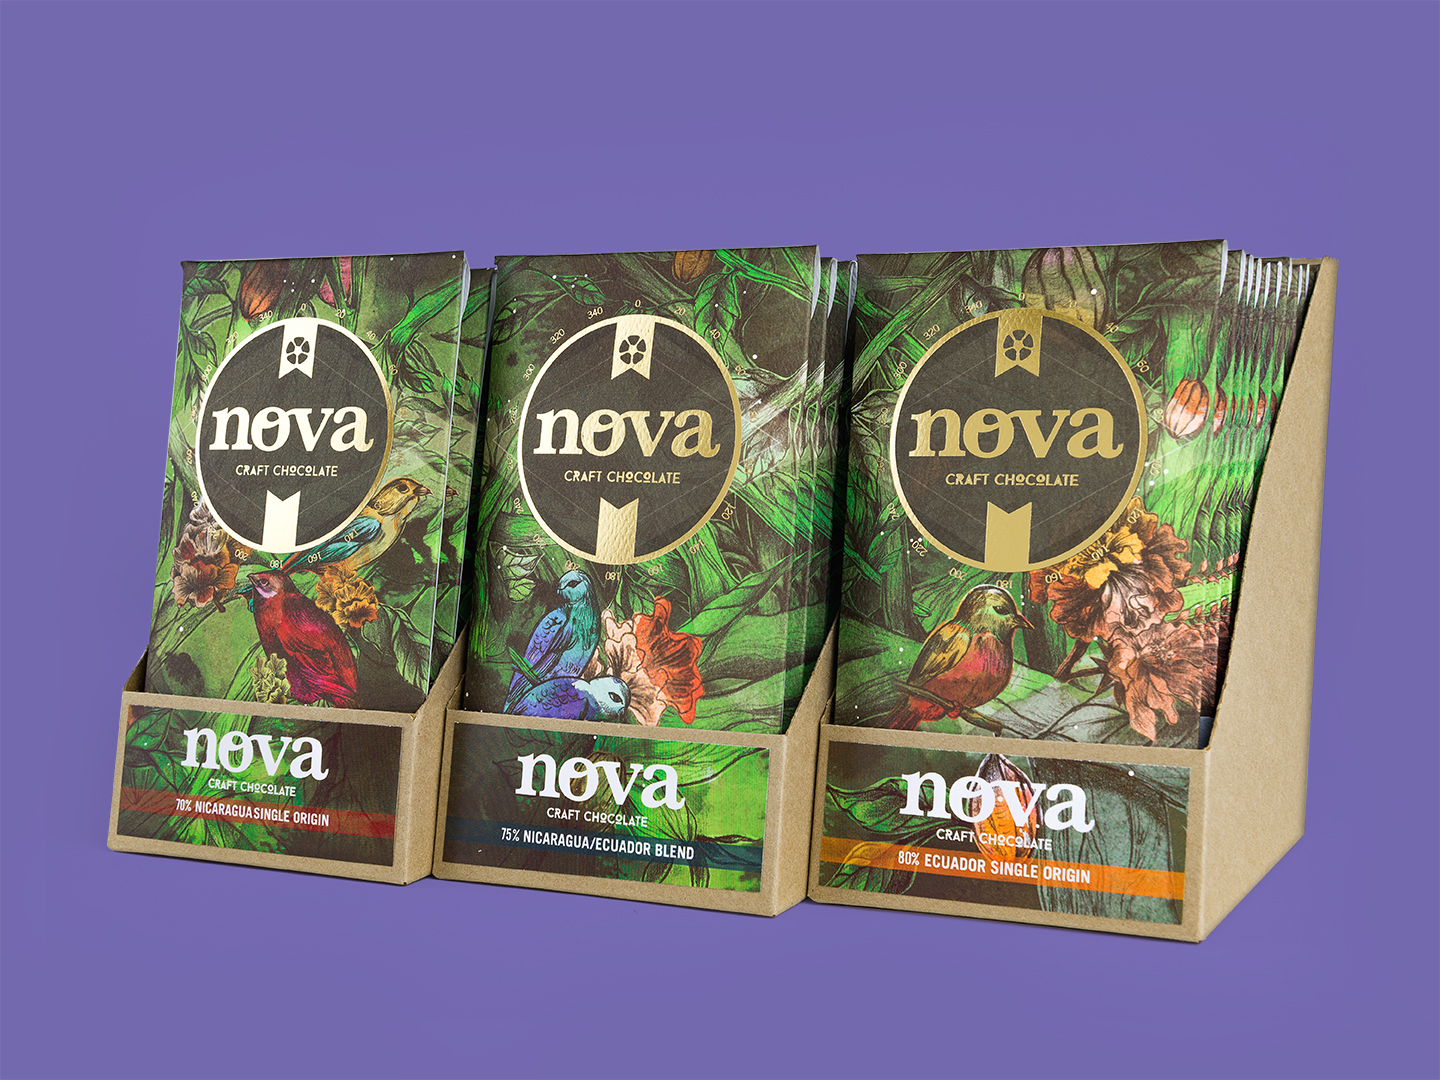 Nova Packaging 1.jpg